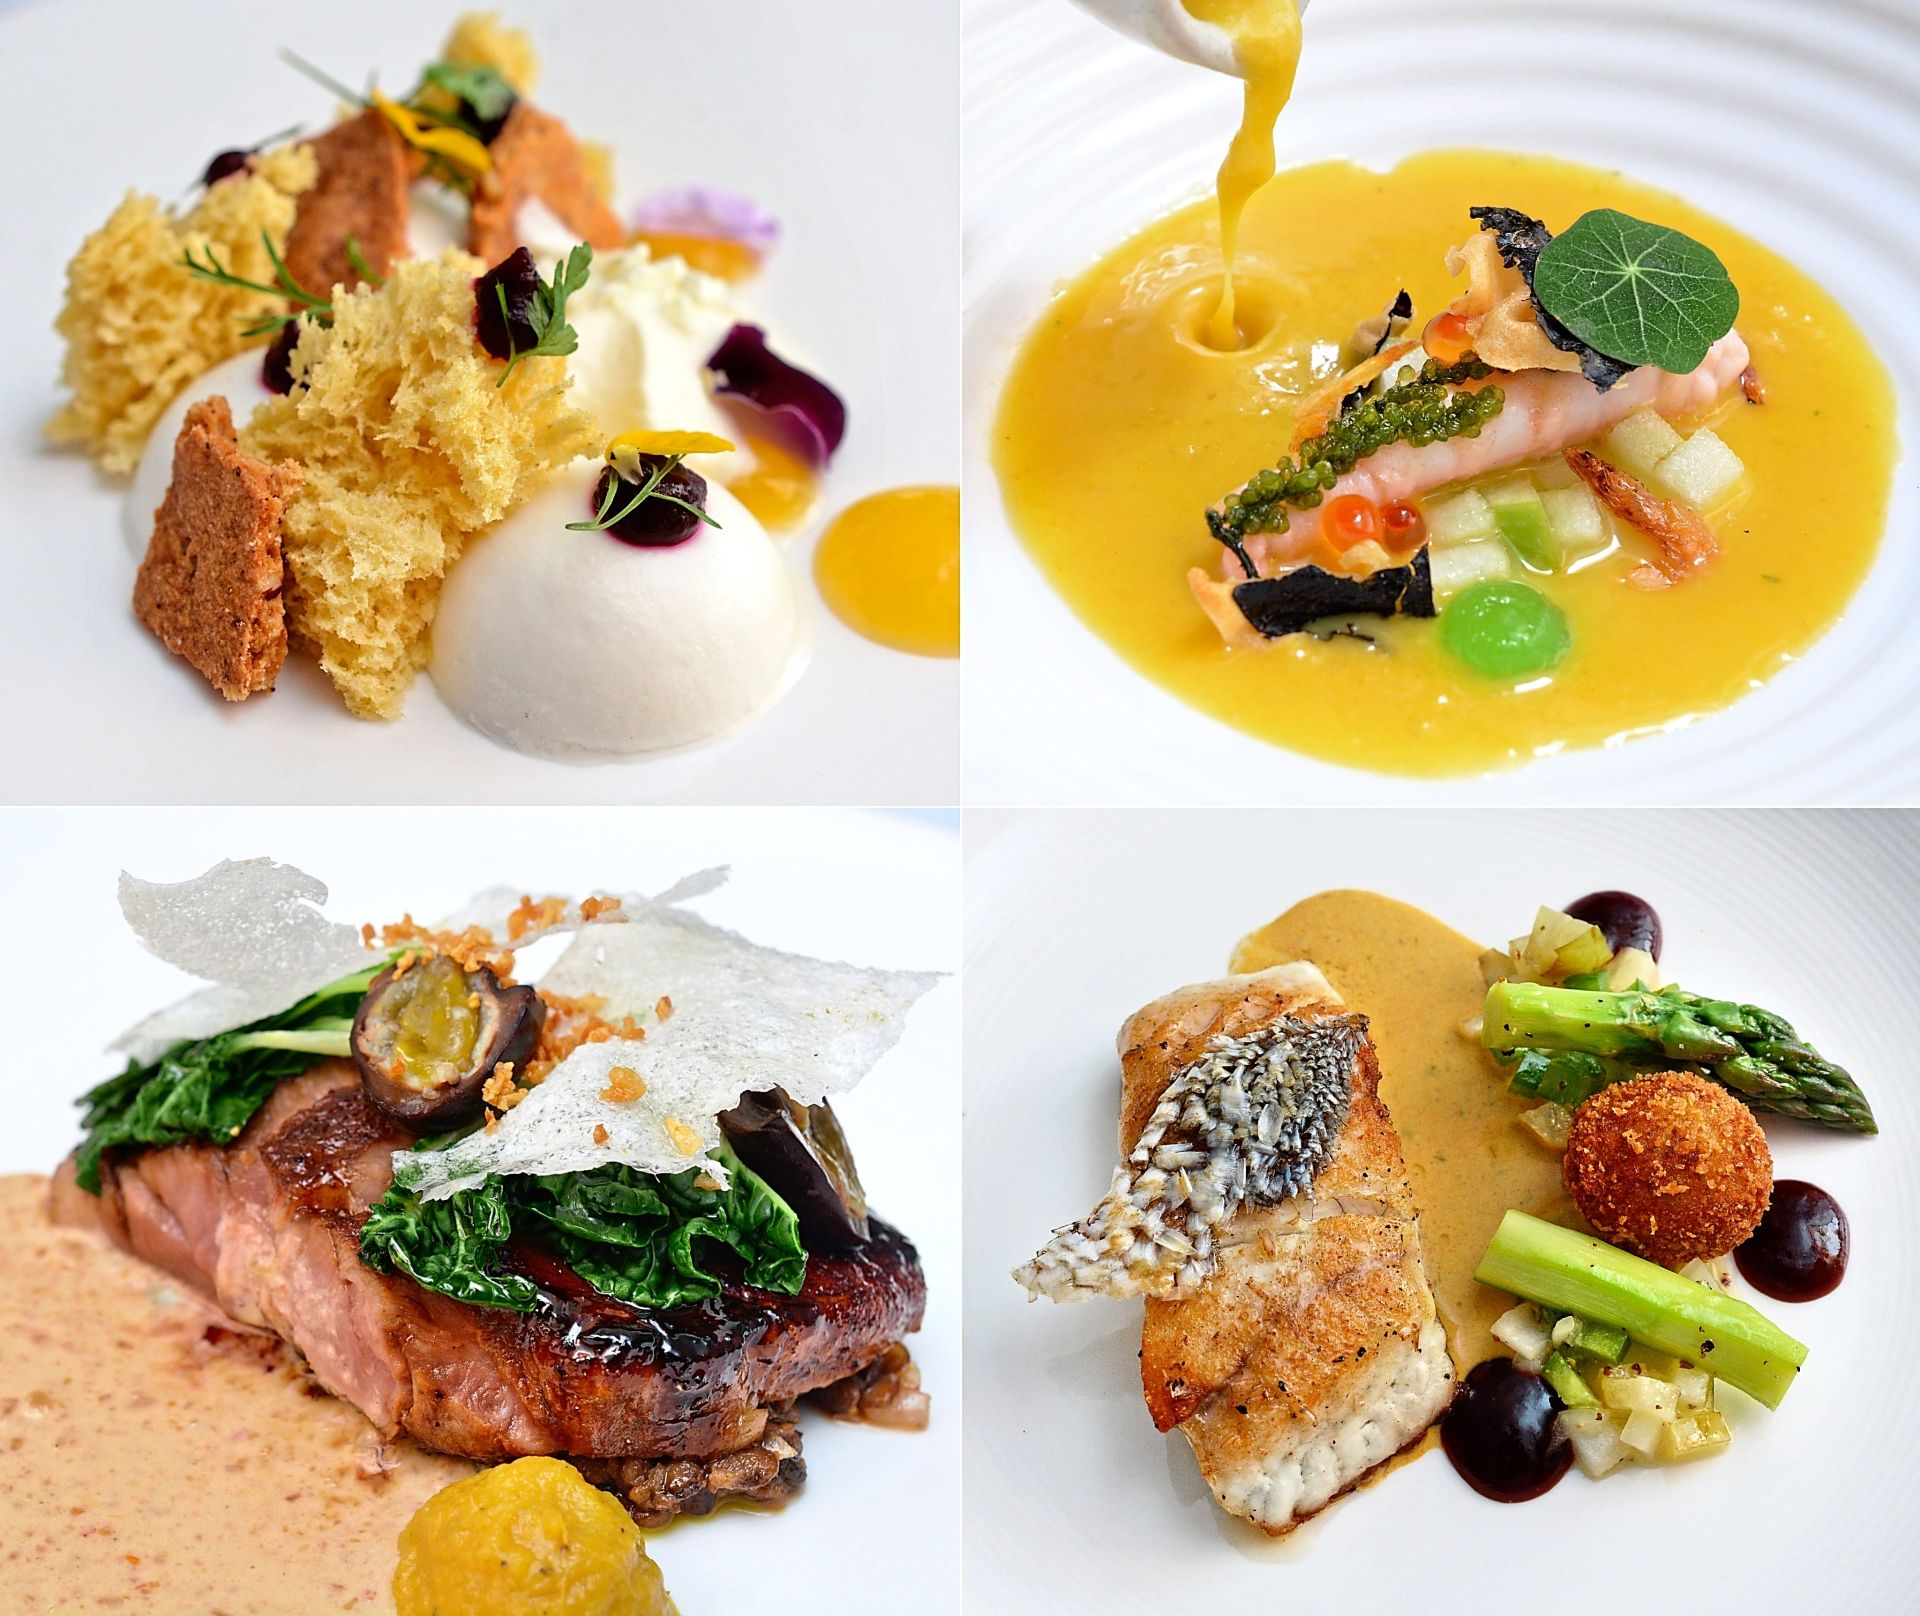 (Clockwise from top left) Balik Pulau Goat Milk 'Tofu', Fresh Caught Tugela Prawn, Line Caught Grouper with Crispy Scales and Coffee-glazed Iberico Pork Collar are among the delicious items featured in the Degustation Menu. — Photo: Jeremy Tan/The Star